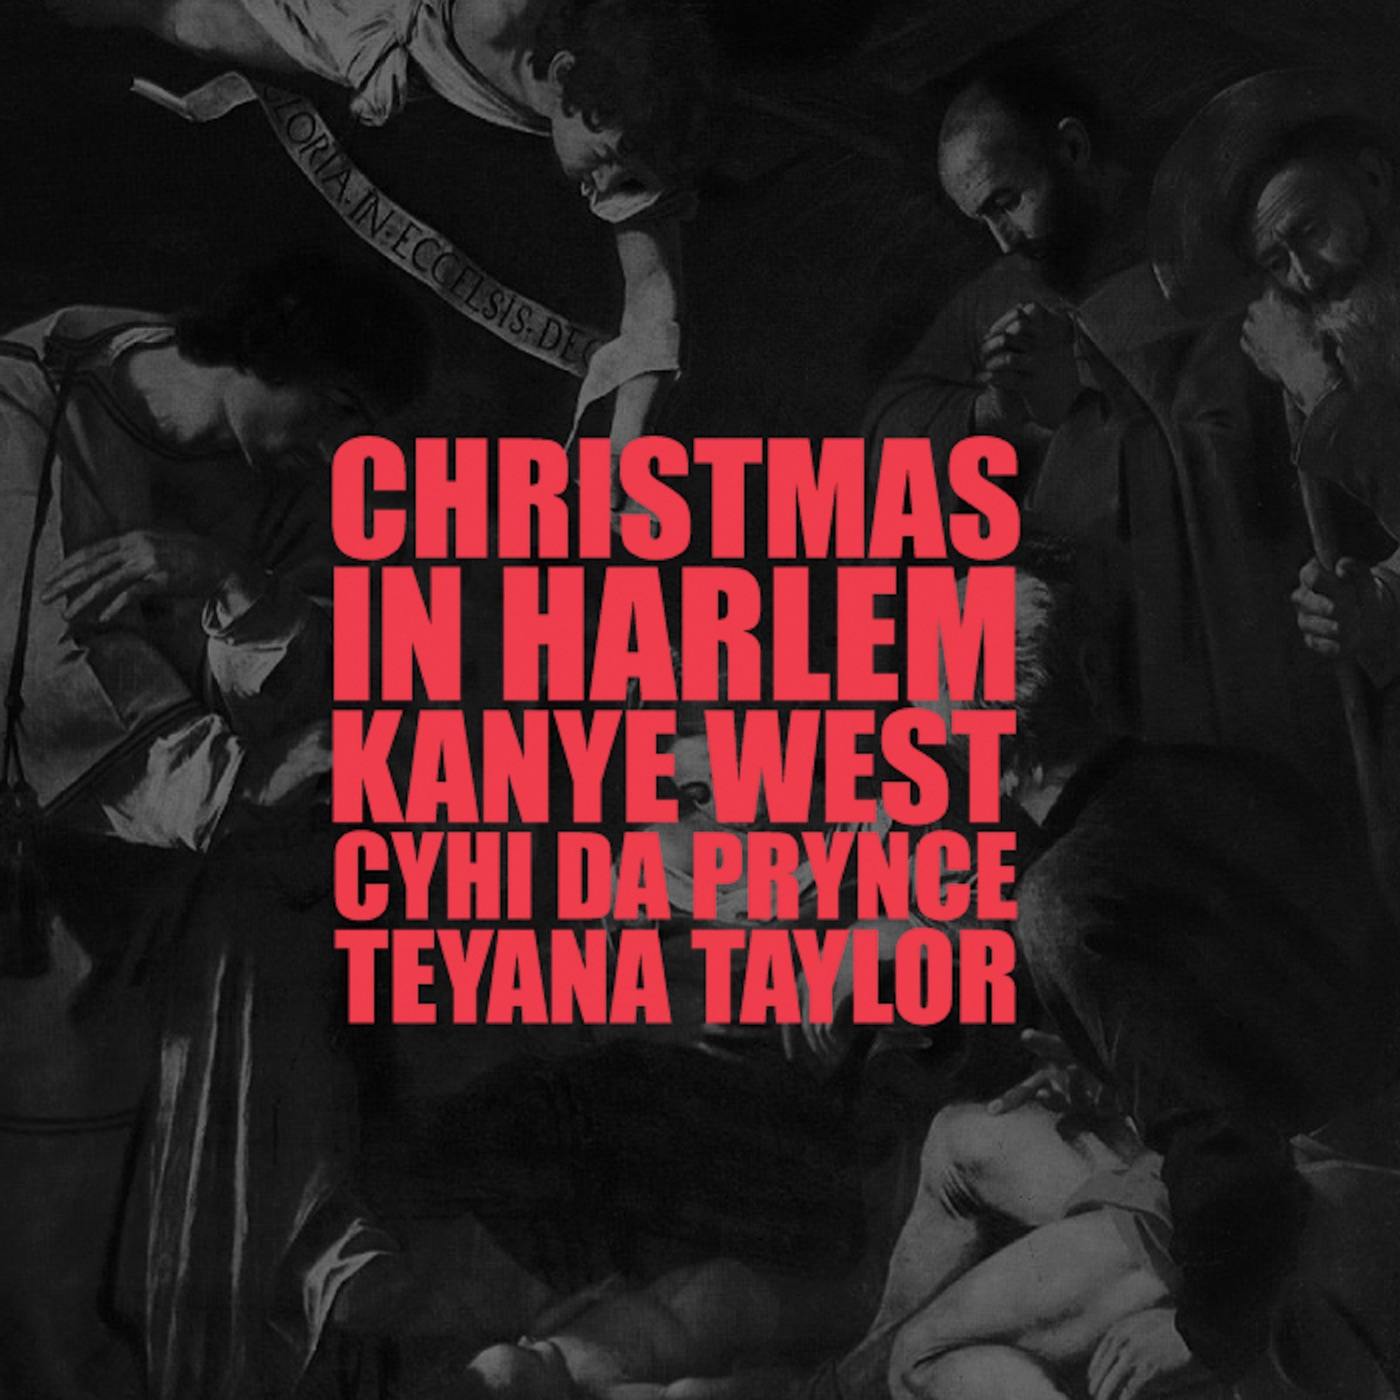 Kanye West - Christmas In Harlem (feat. Prynce Cy Hi & Teyana Taylor) - Single Cover